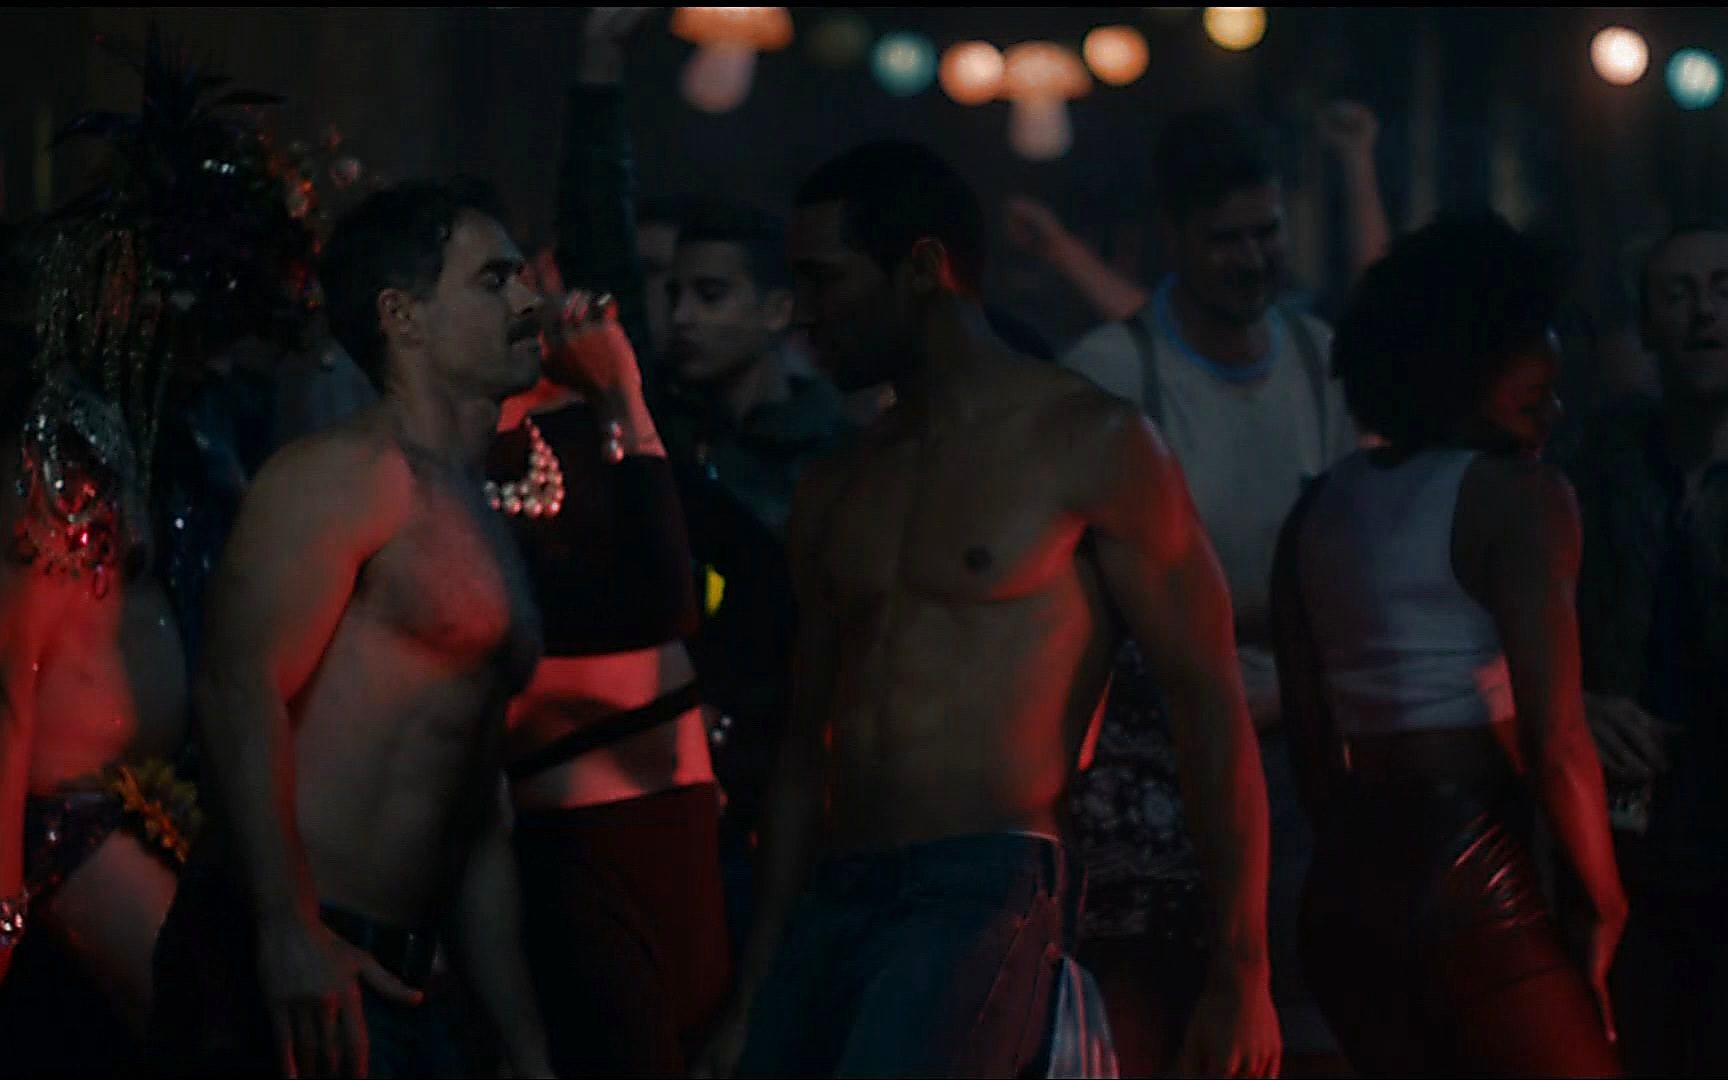 Russell Tovey sexy shirtless scene January 12, 2015, 12am